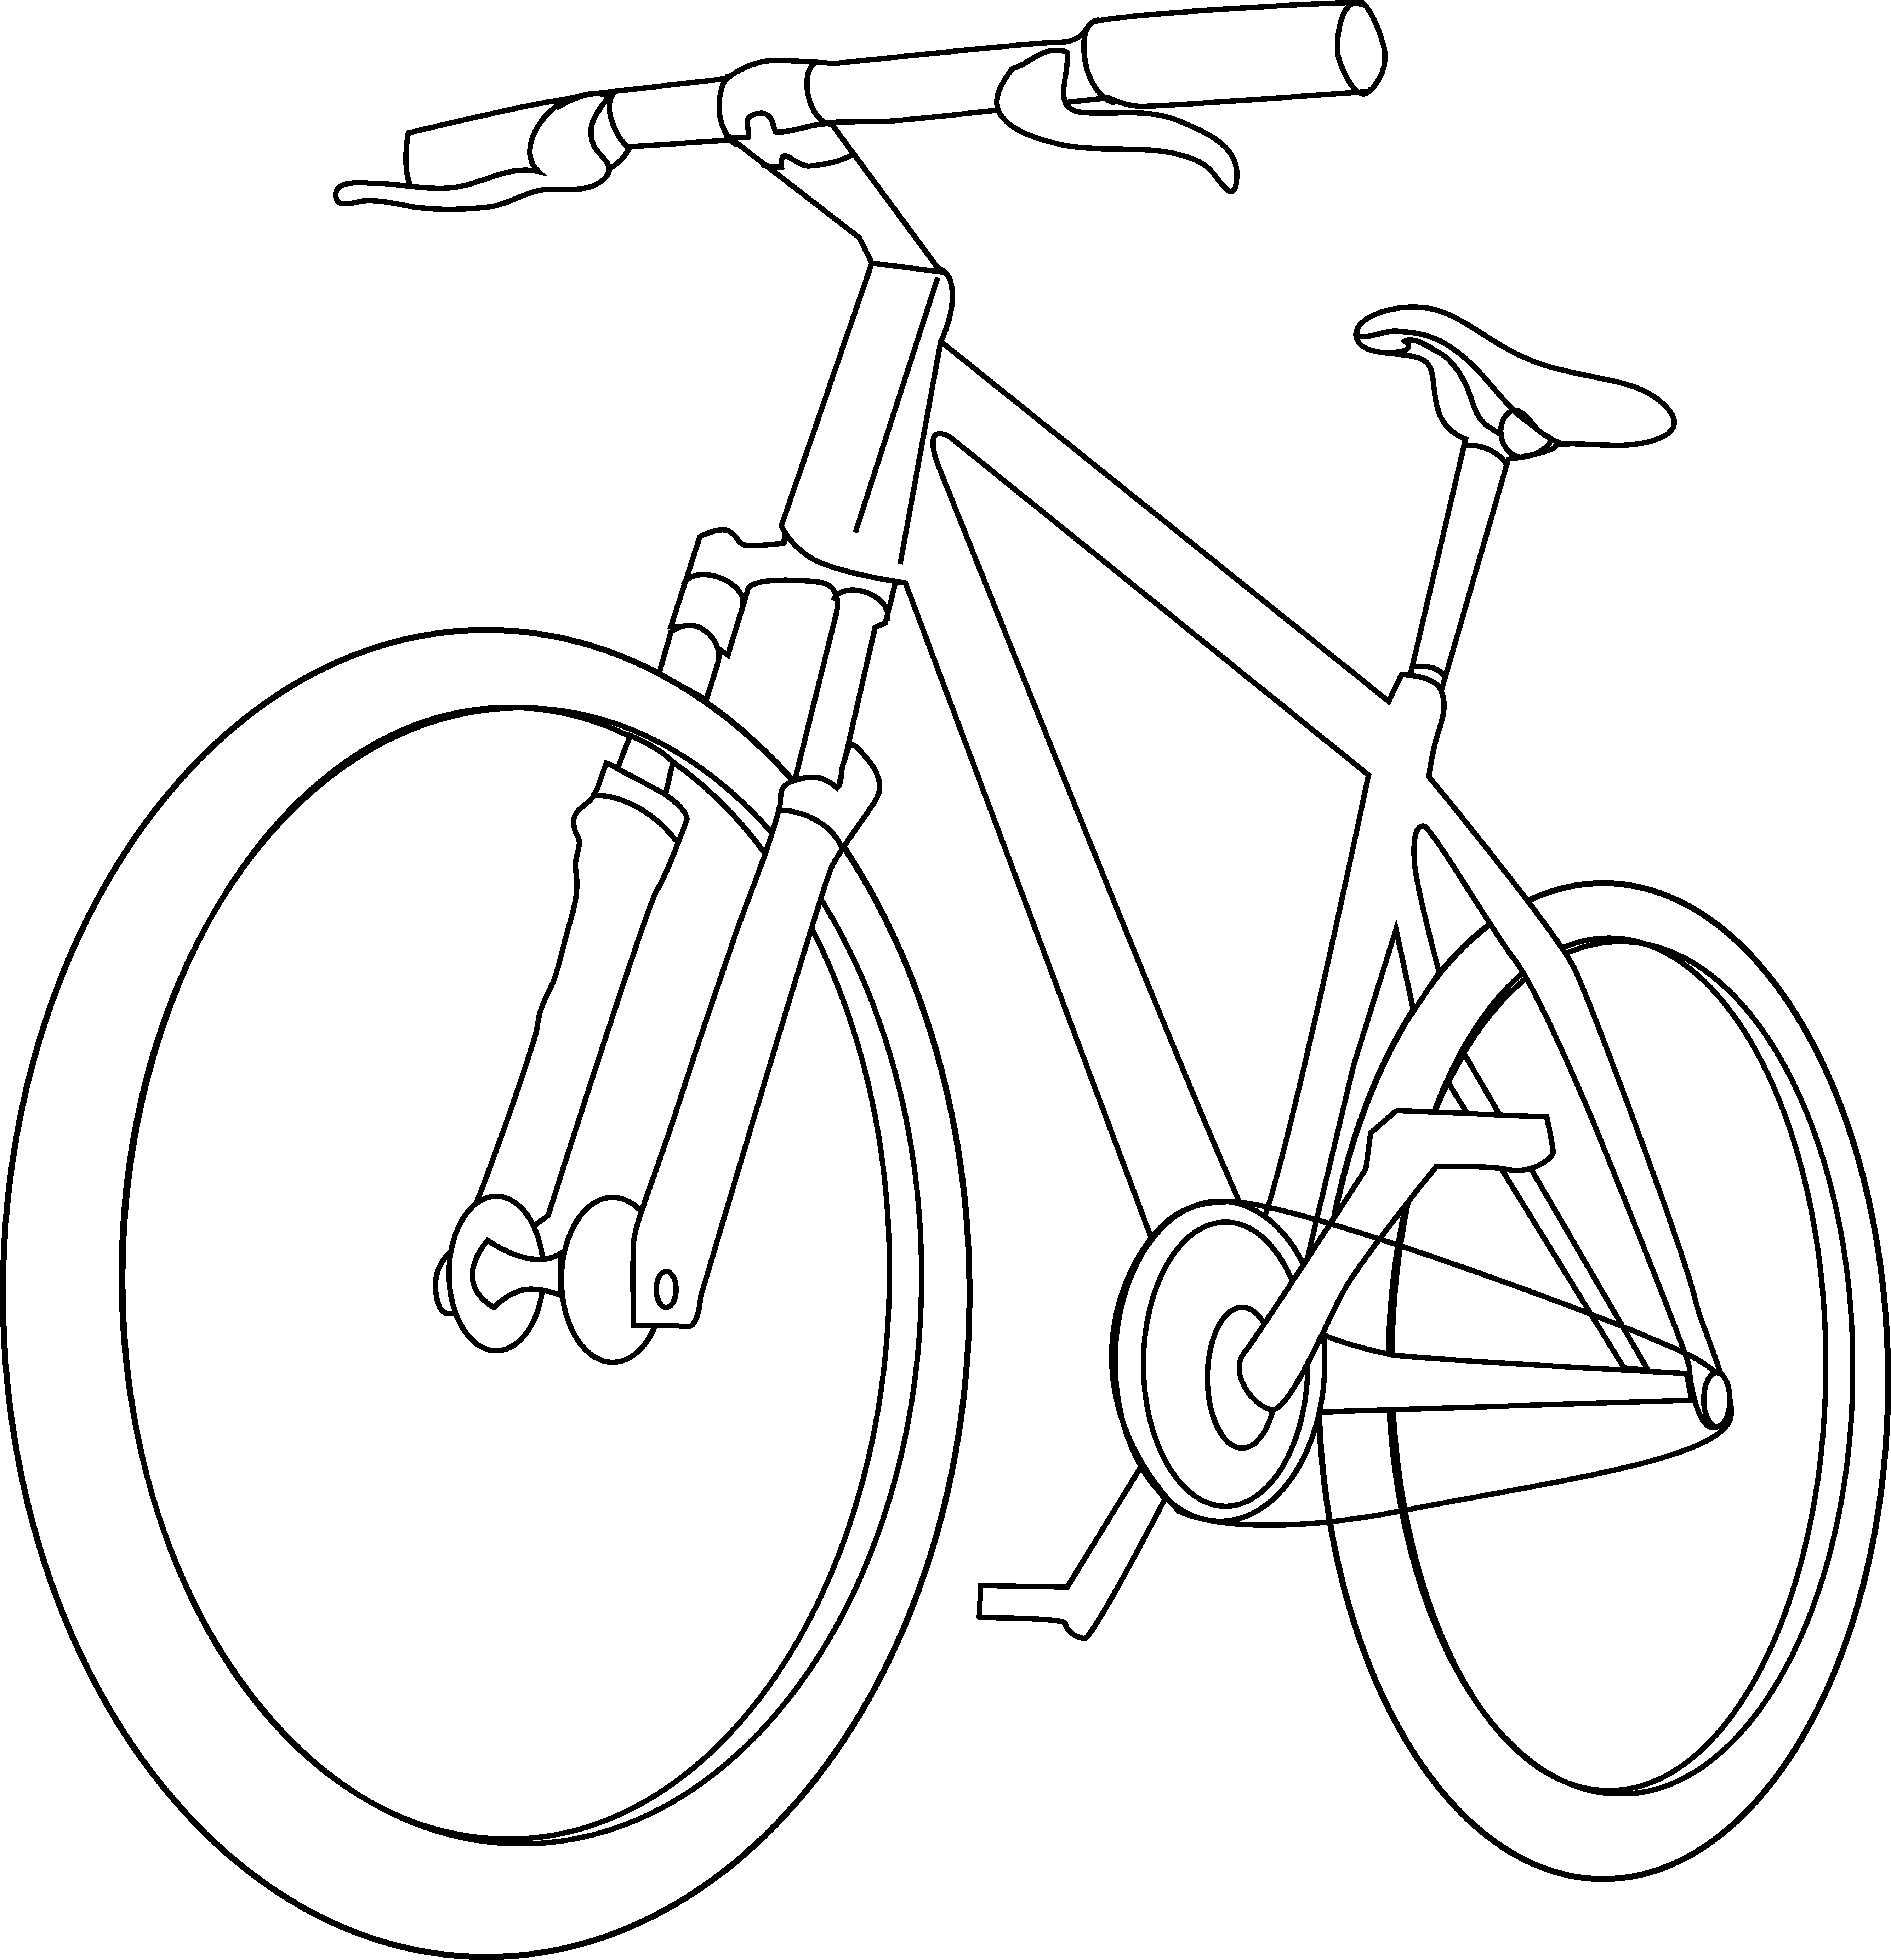 Family clipart bicycle. Bike line drawing at